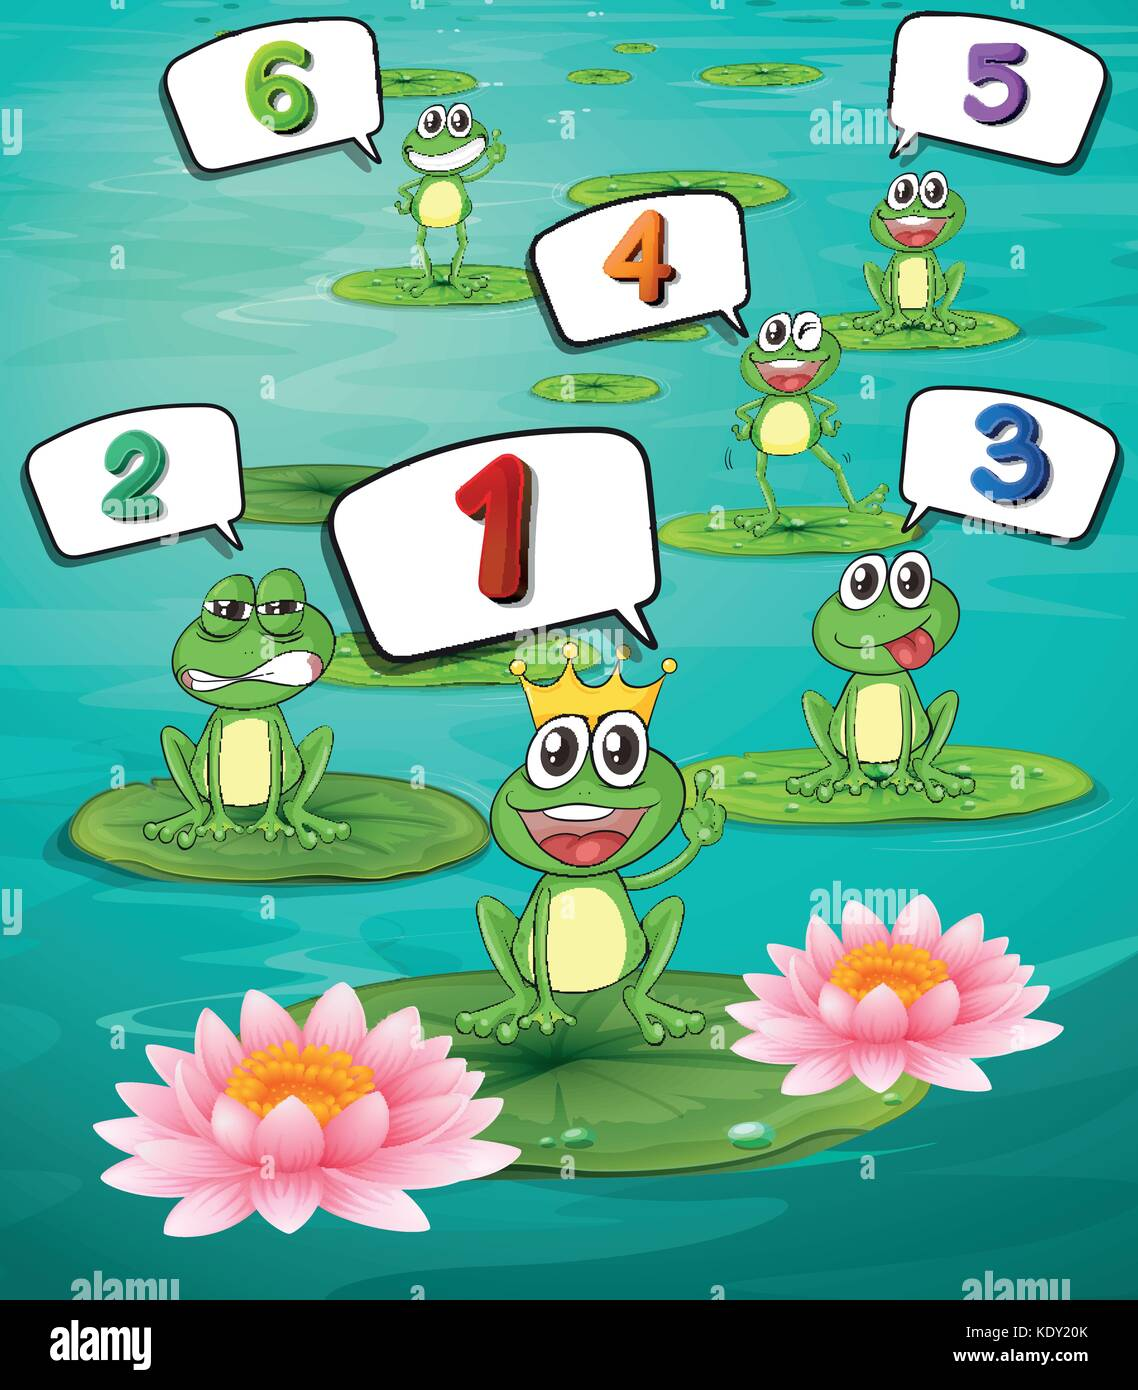 Counting numbers with green frogs illustration Stock Vector